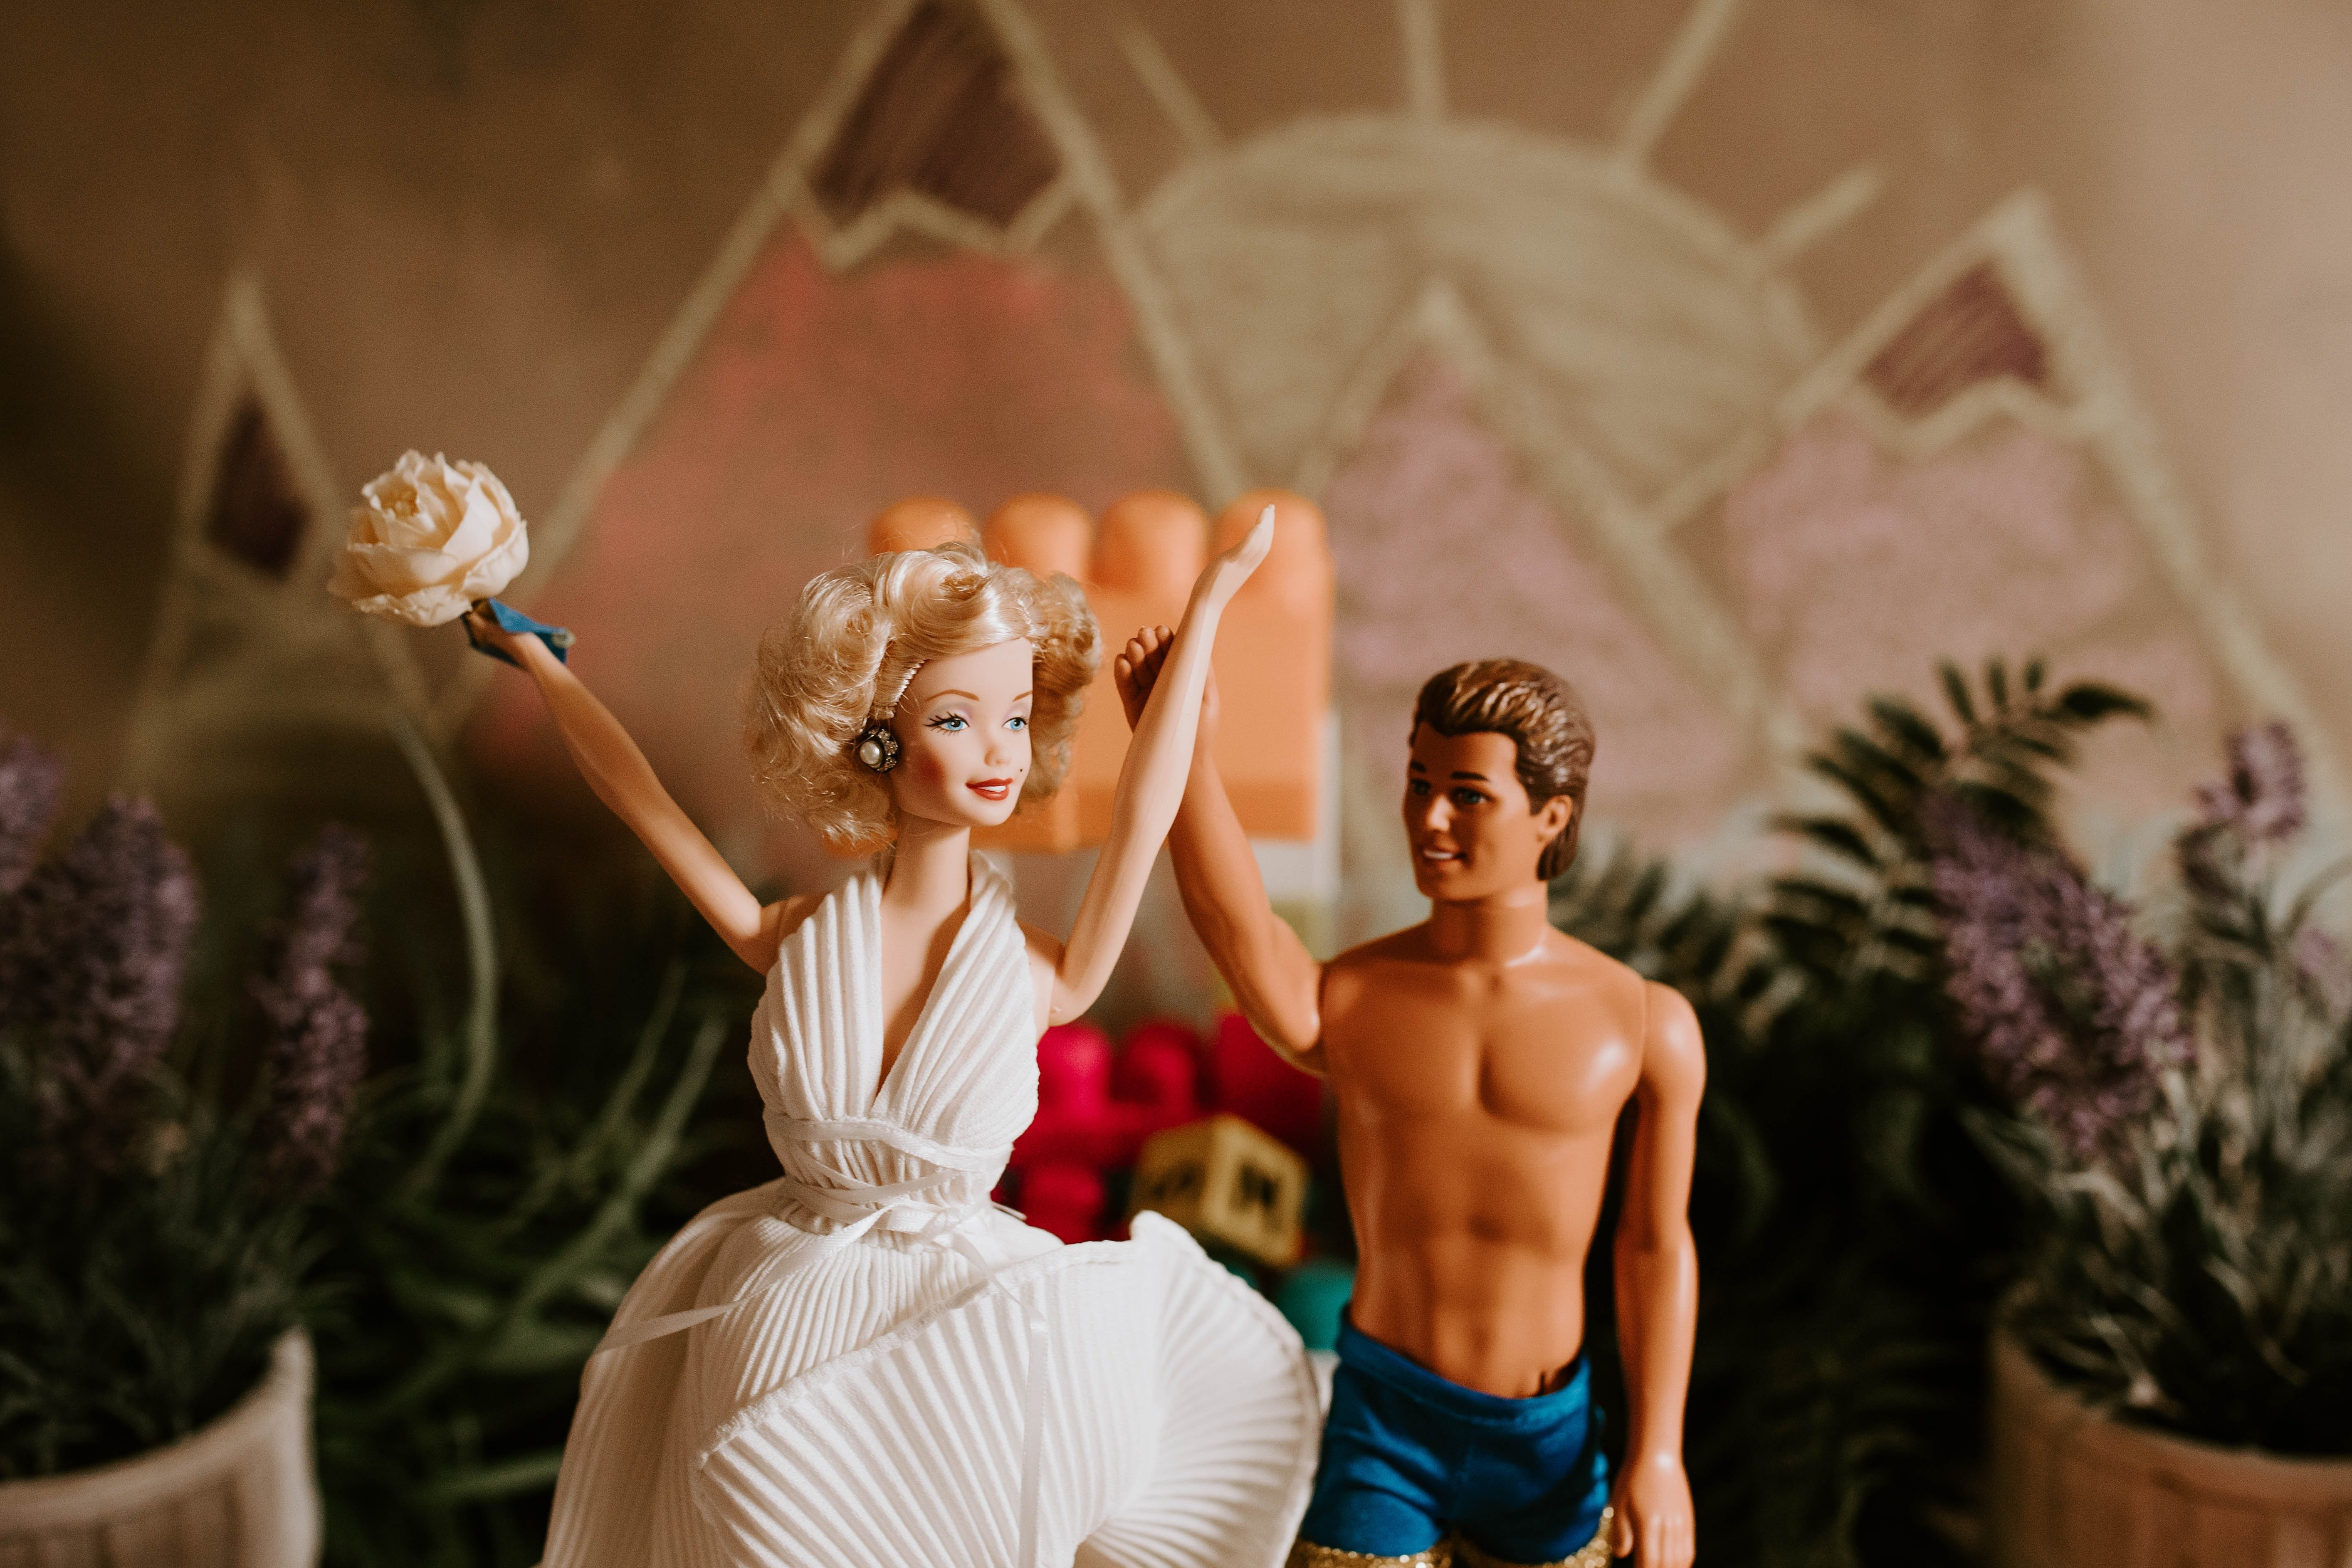 The divorced Barbie was the most expensive.   Photo: Pexels/Tara Winstead